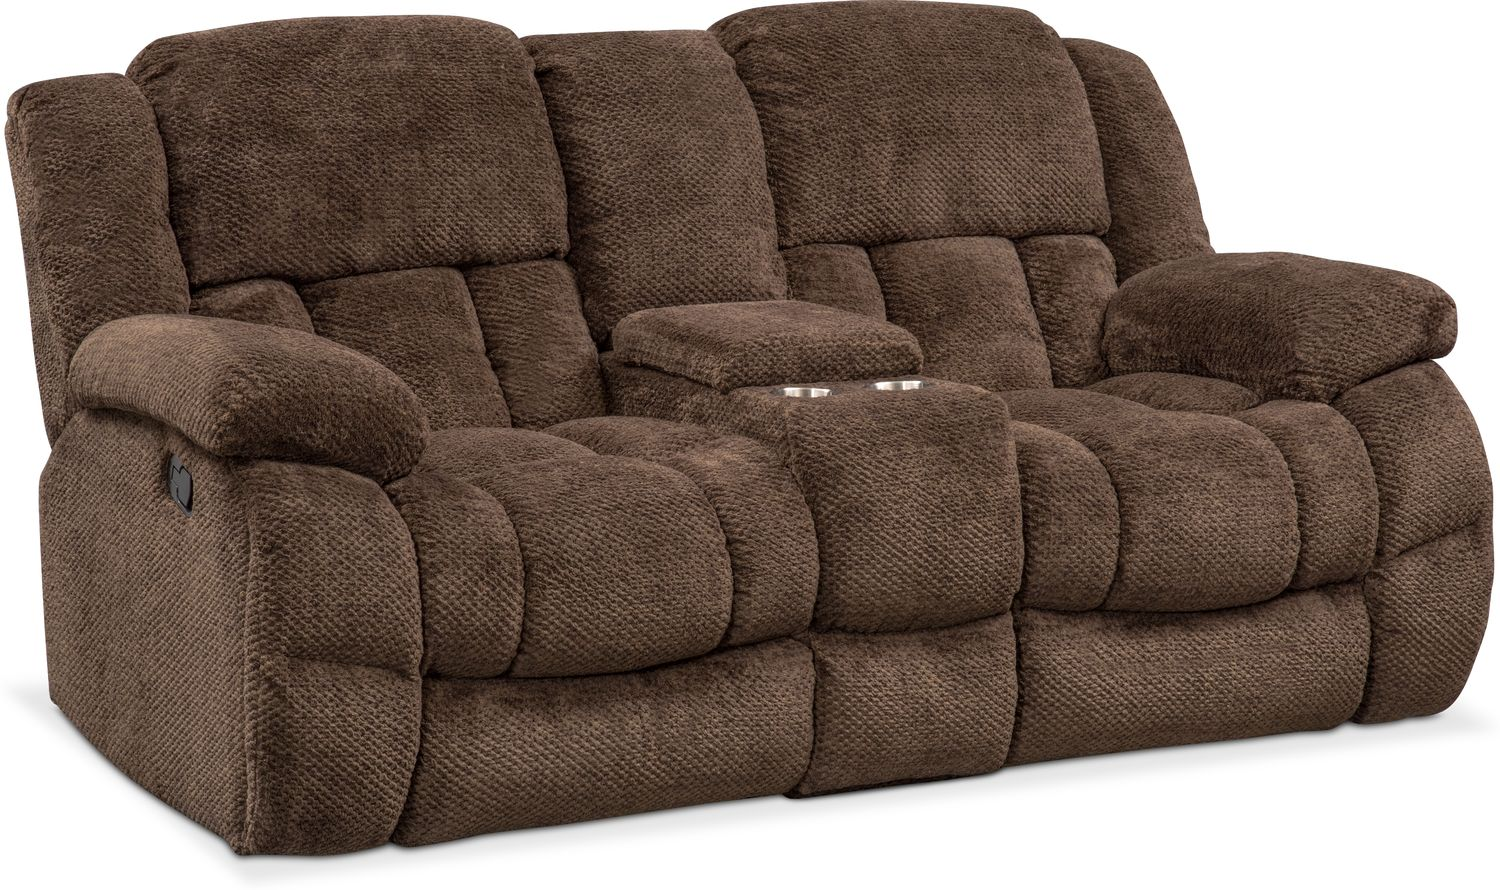 Turbo Reclining Loveseat with Console | Value City Furniture and